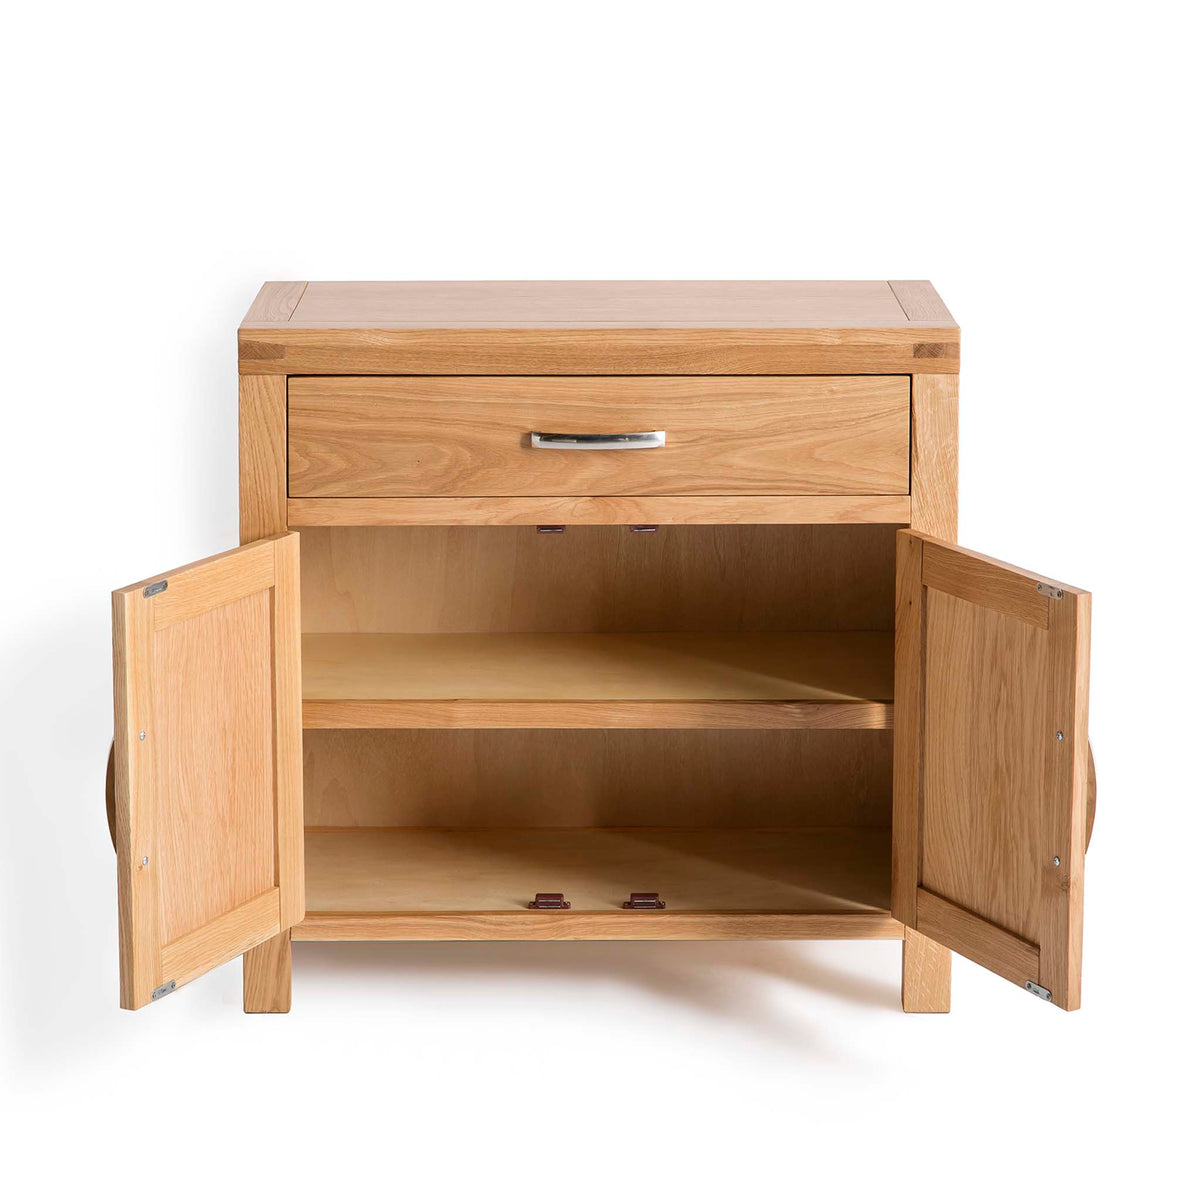 Abbey Light Oak Mini Sideboard - Front view with doors open